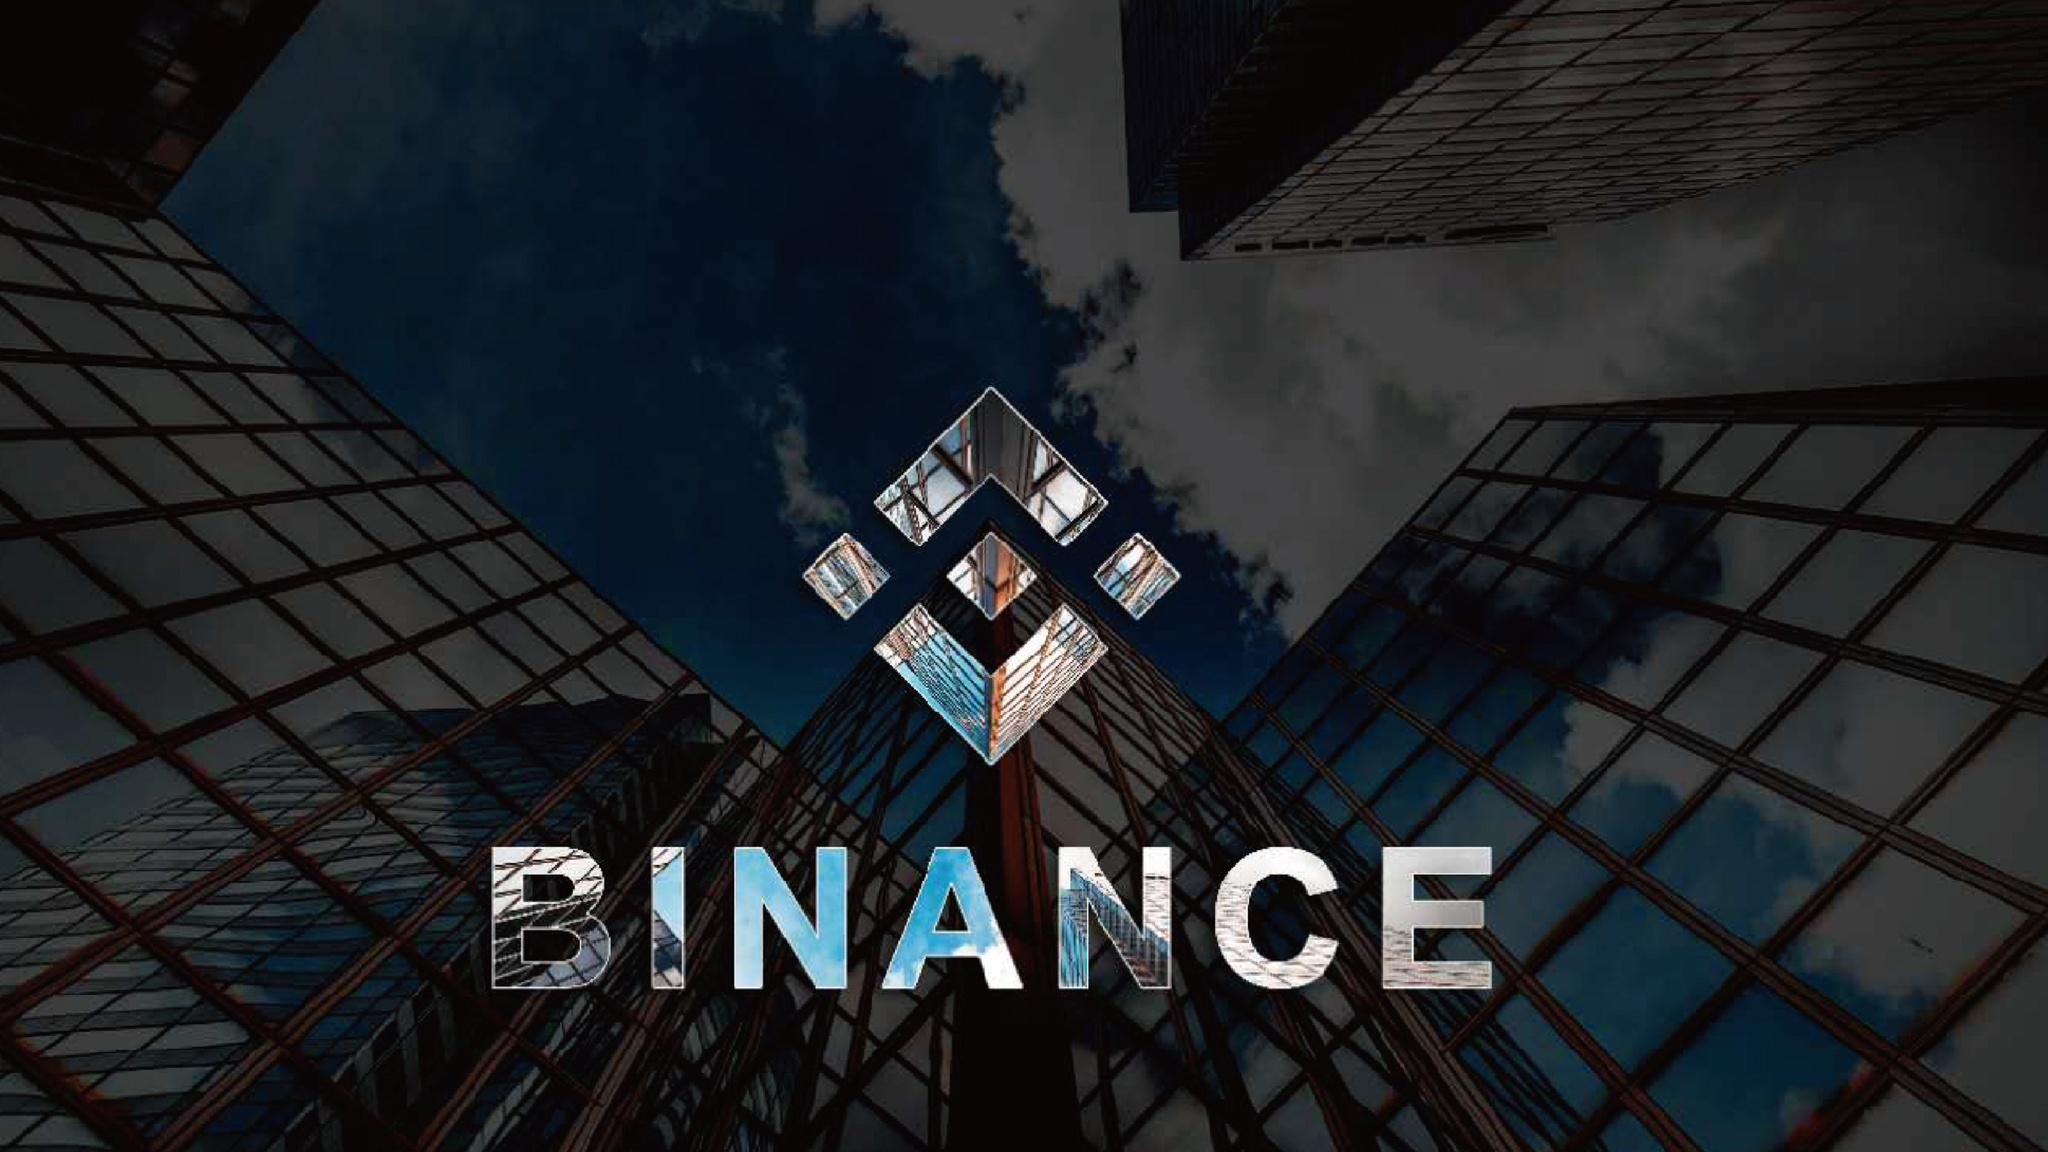 Binance Suspends Withdrawals And Trading For Second Time In Two Days